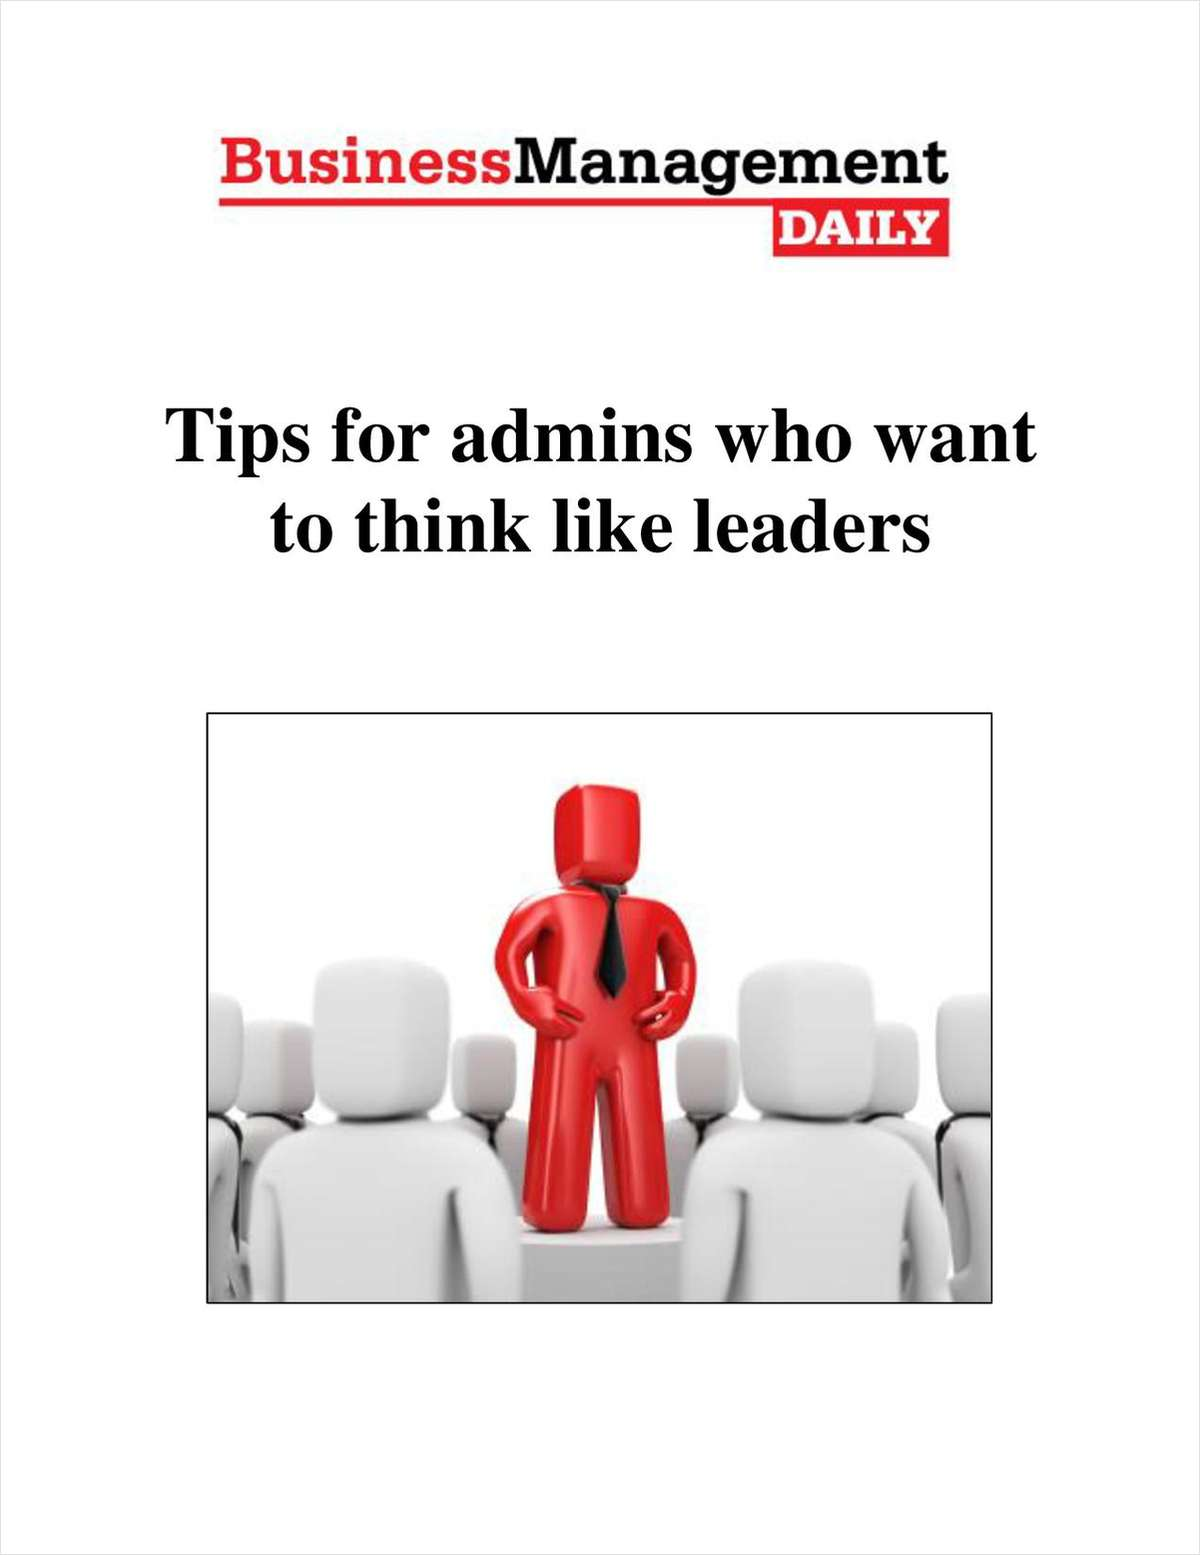 Tips for Admins Who Want to Think Like Leaders